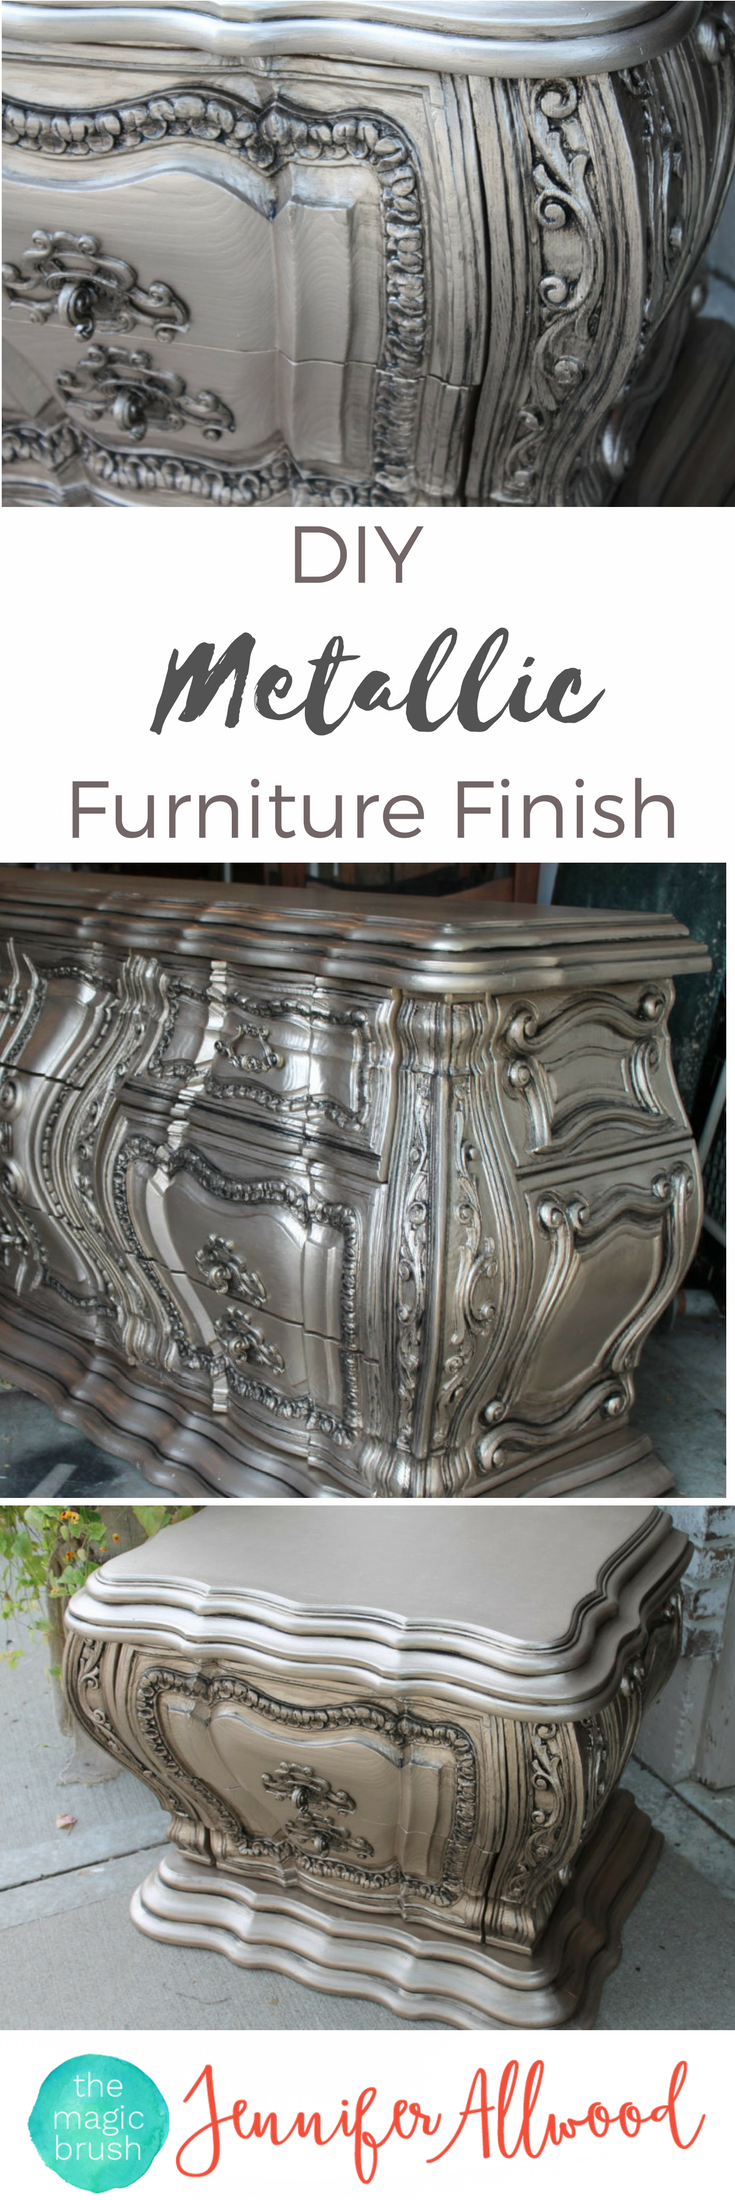 Silver Furniture - My most talked about finish   Metallic furniture ...